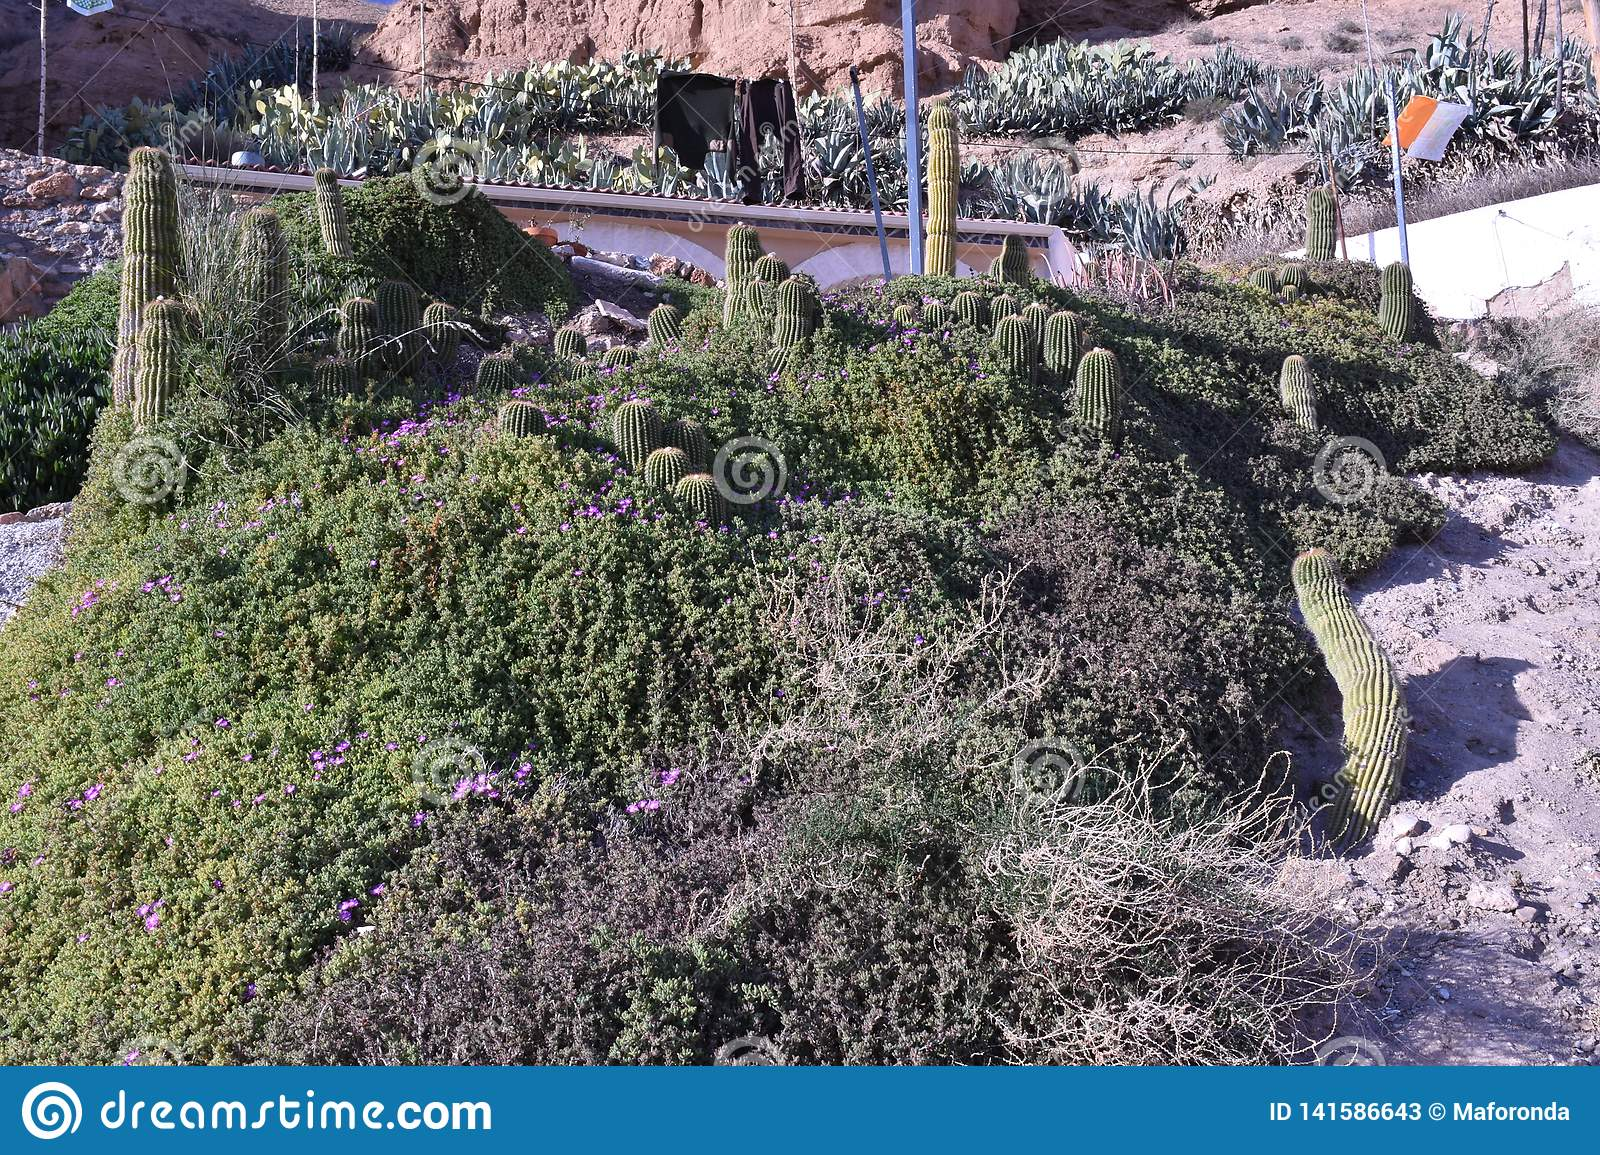 Cave house in the Gorafe desert with area planted with cactus